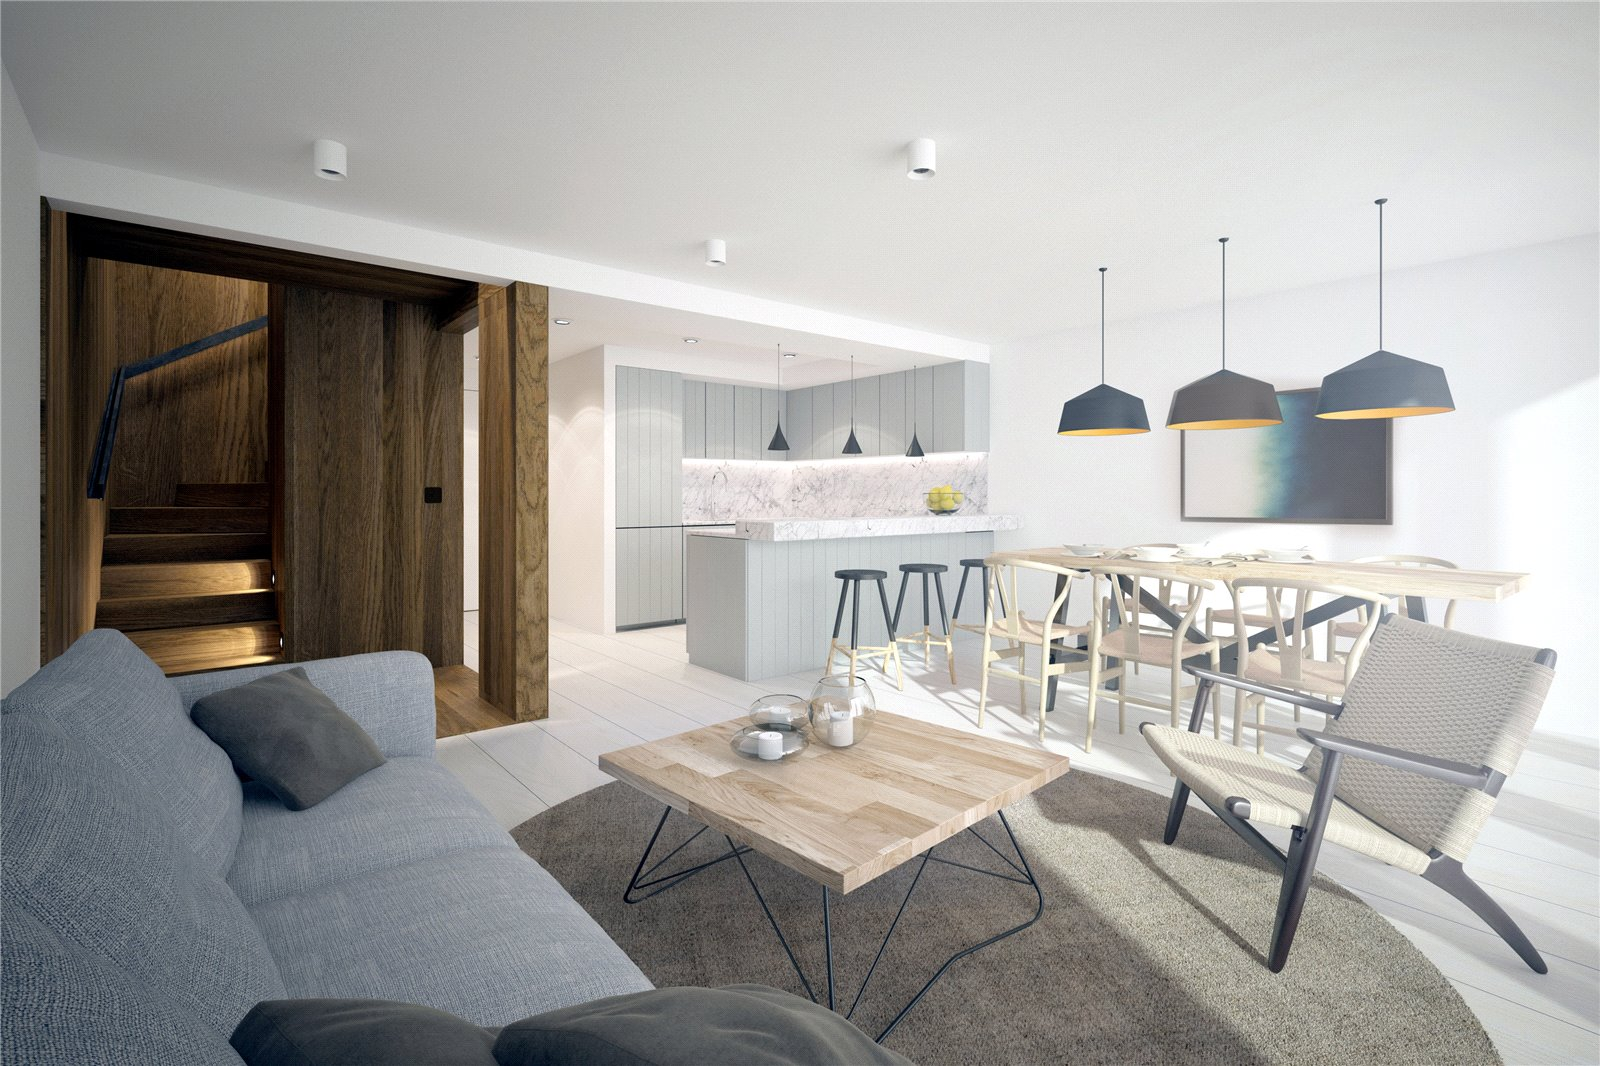 Apartment for Sale at Alderbank, St Johns Road, Altrincham, WA14 Alderbank, St Johns Road, Altrincham, WA14